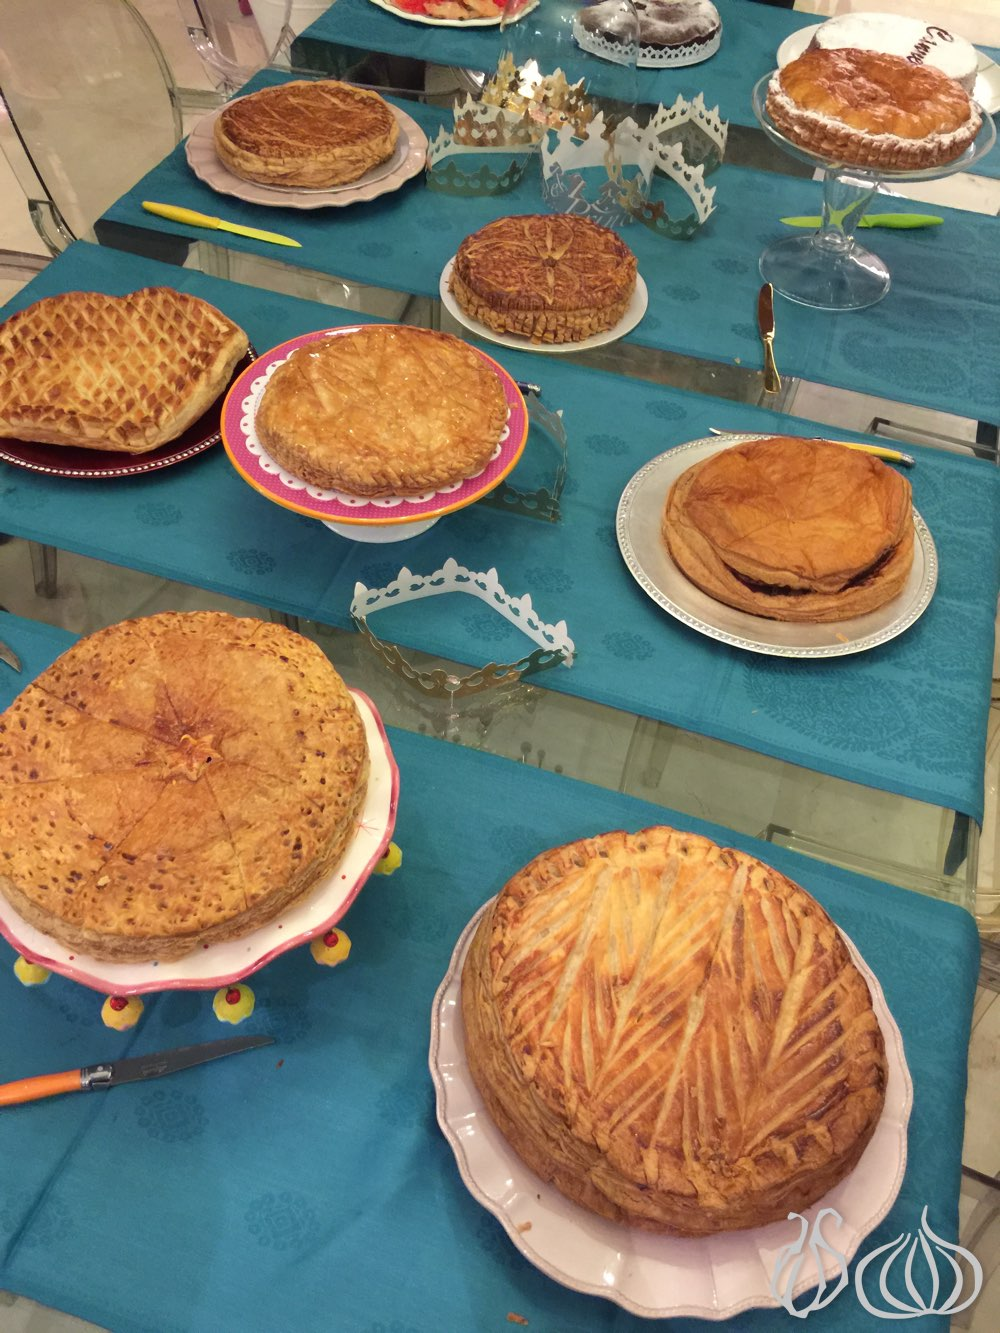 galette-des-rois-king-cake-epiphany-lebanon-nogarlicnoonions532015-01-06-08-19-15